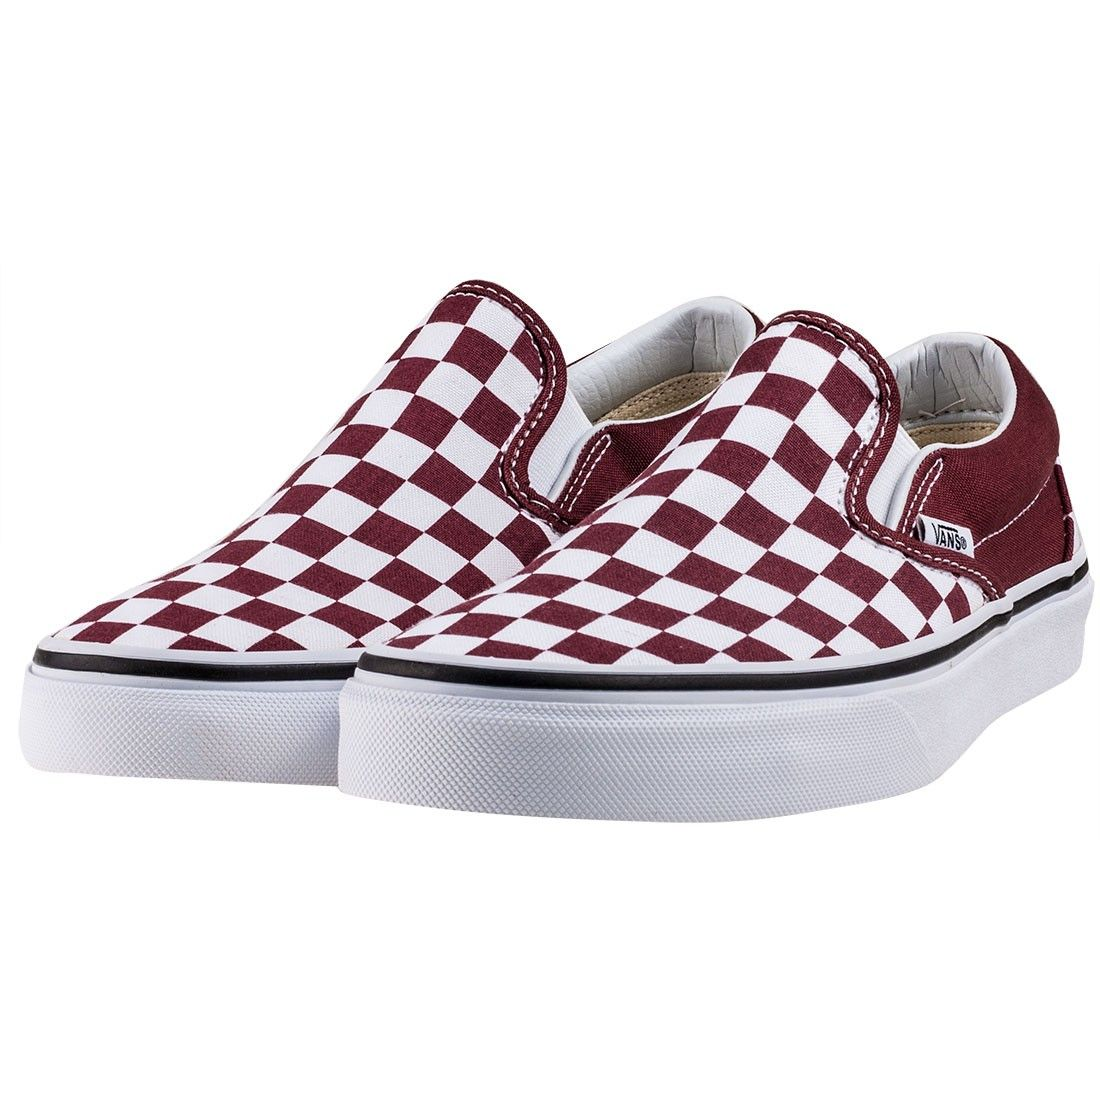 be41a37555 Vans Classic Womens Slip-on Checkerboard in Burgundy White in 2019 ...